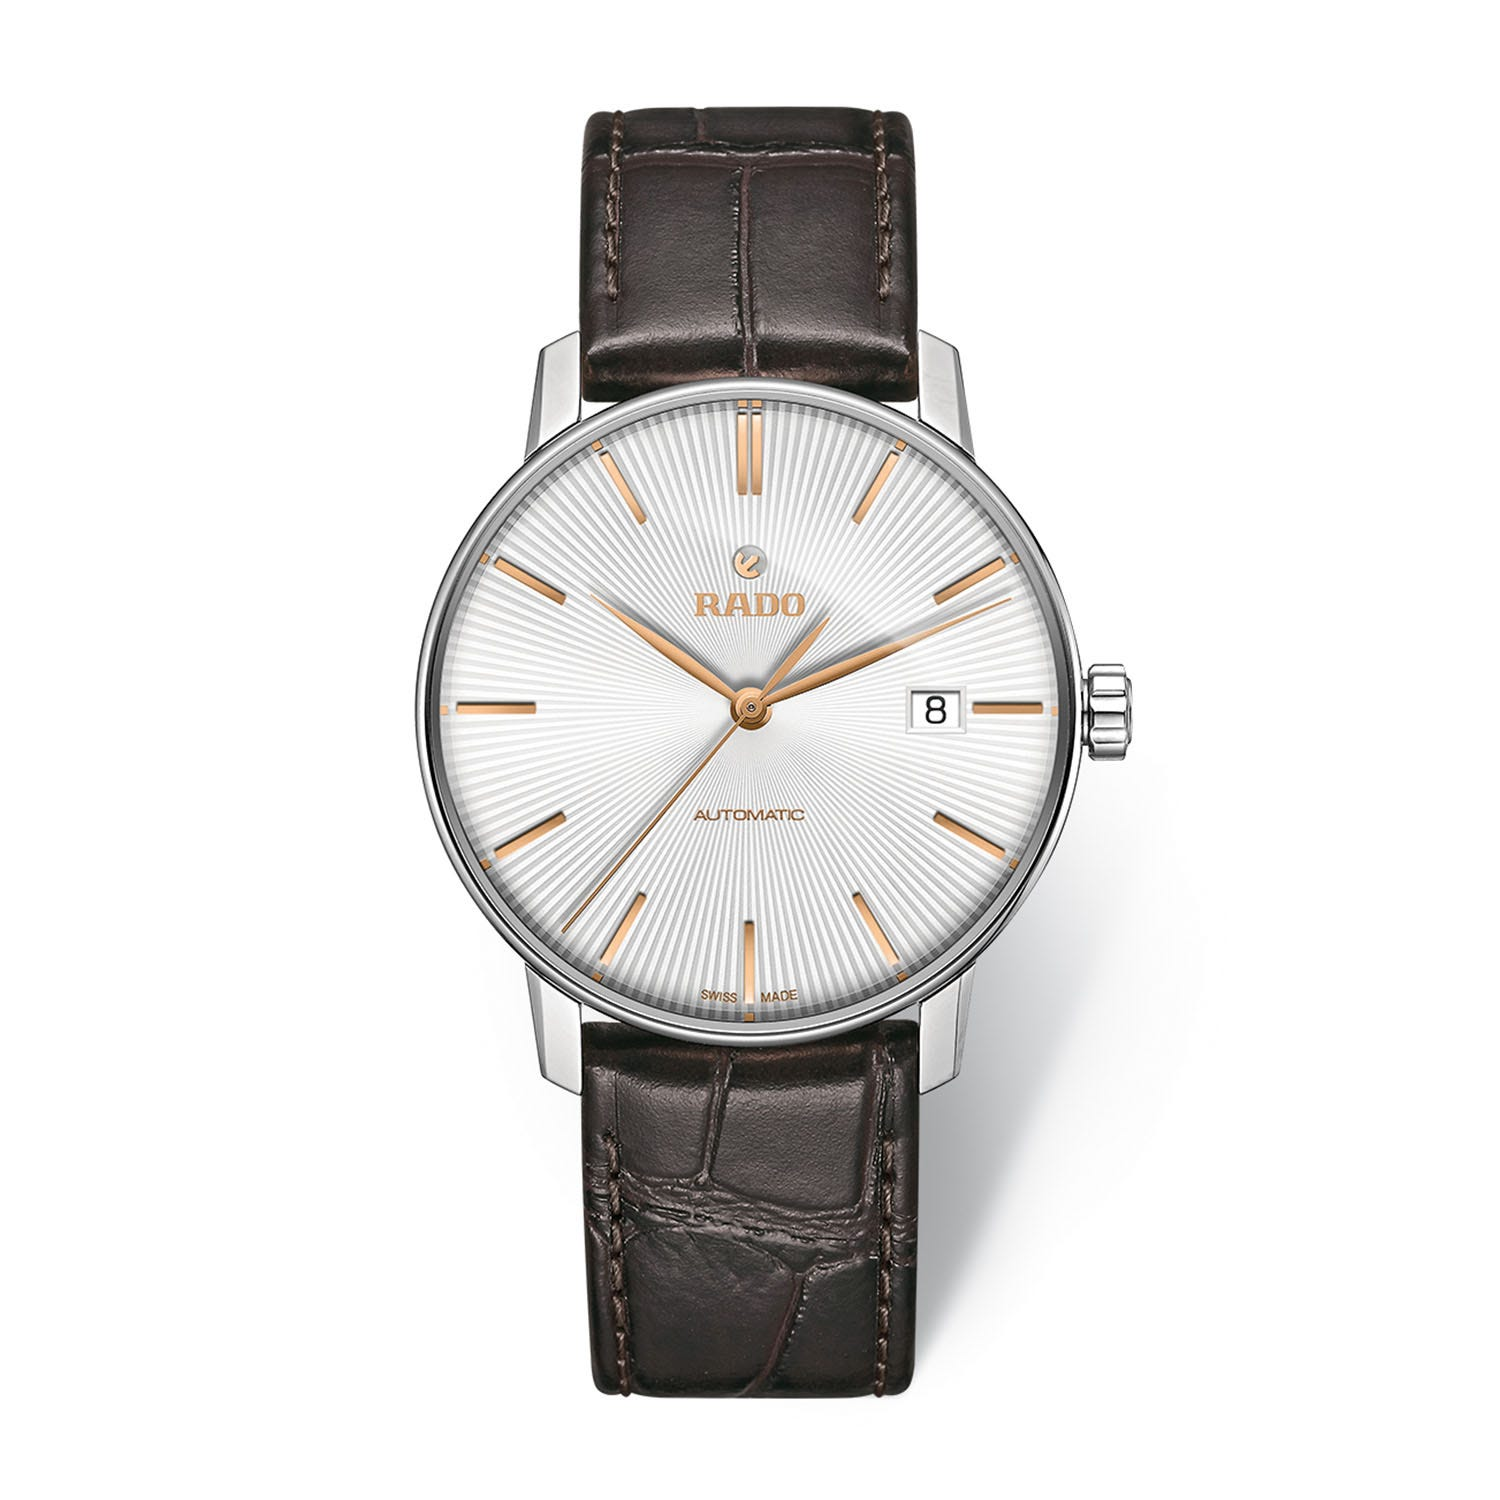 Rado Coupole Classic Automatic Men's Brown Leather Strap Watch